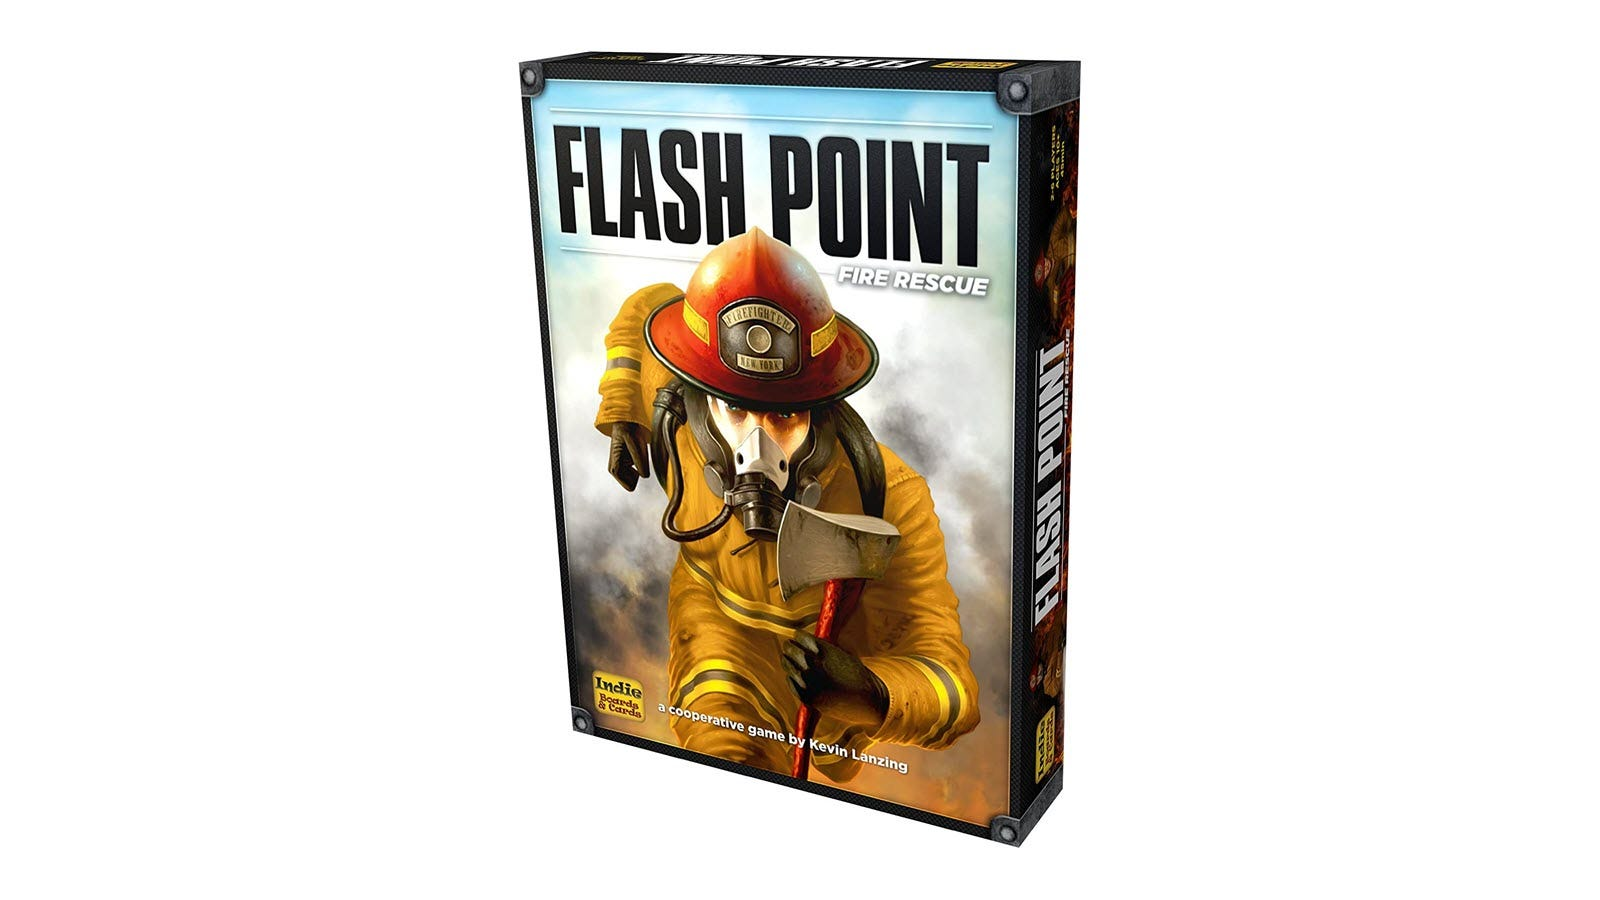 The Flash Point Fire Rescue game box featuring a firefighter holding an axe.